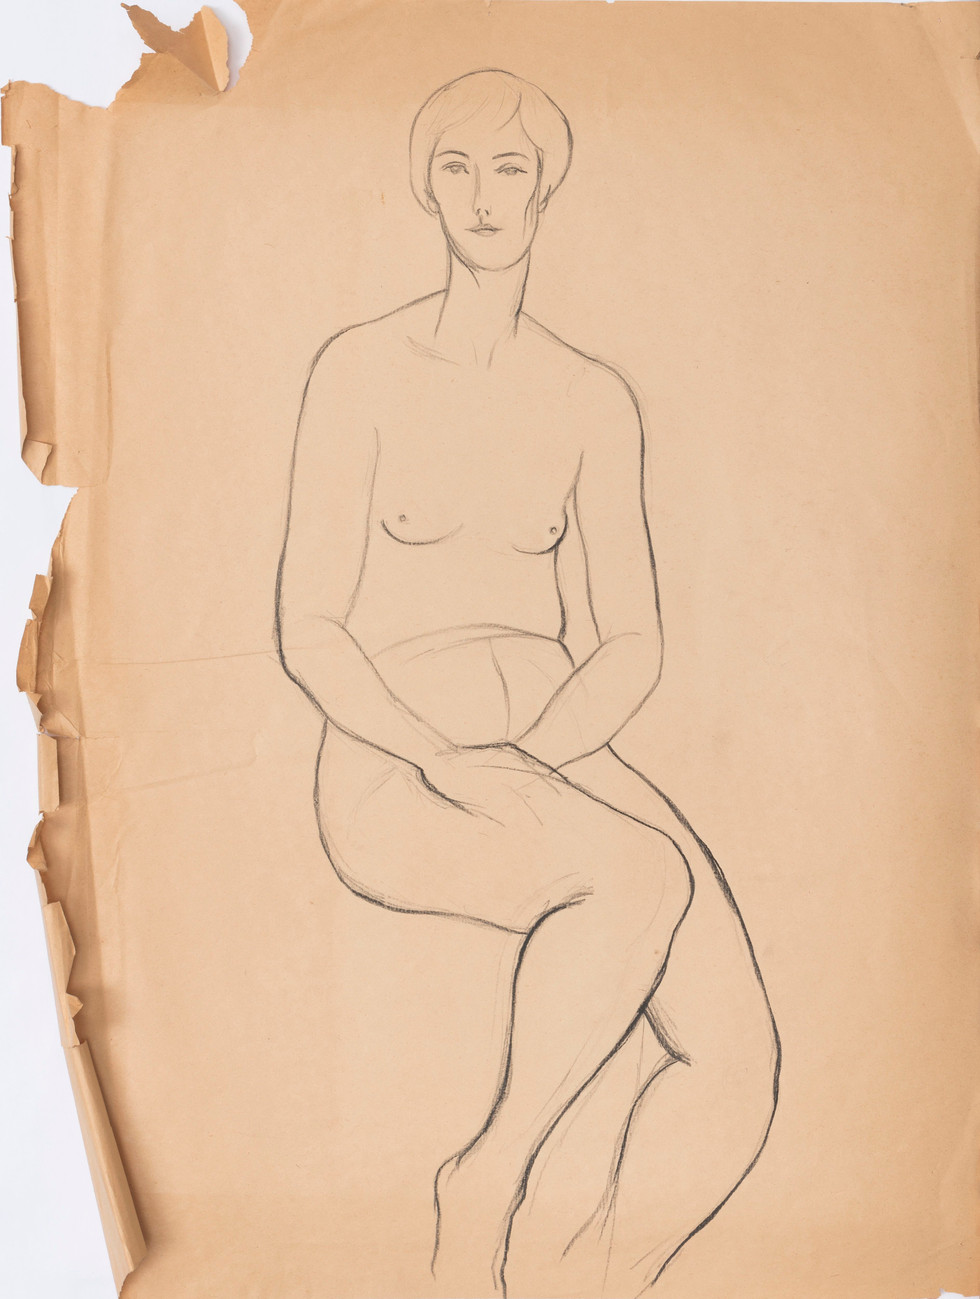 Untitled sketch - nude female figure sitting